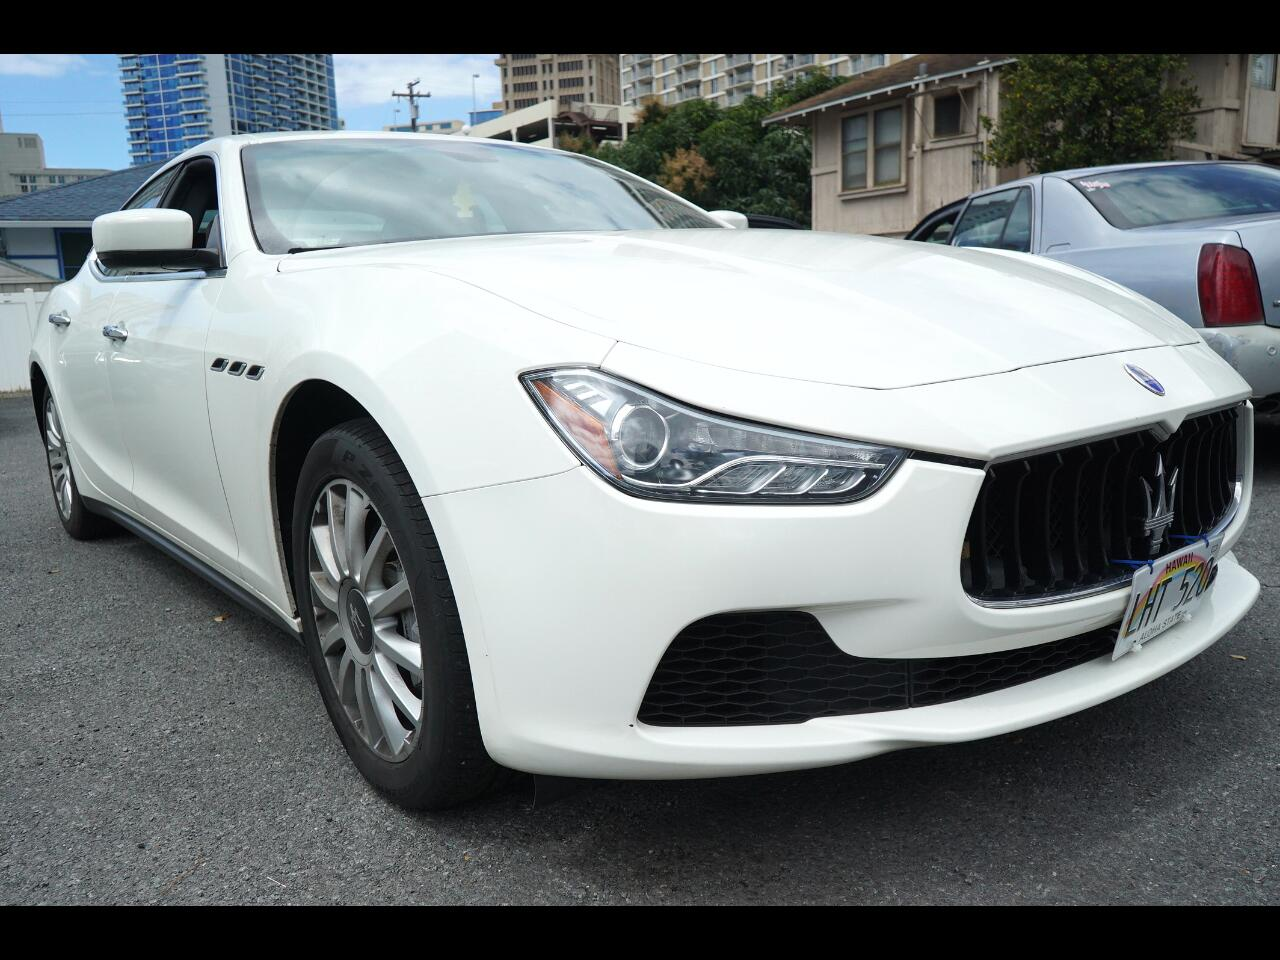 Exotic Cars For Sale In Honolulu Hi 5 380 Cars From 12 800